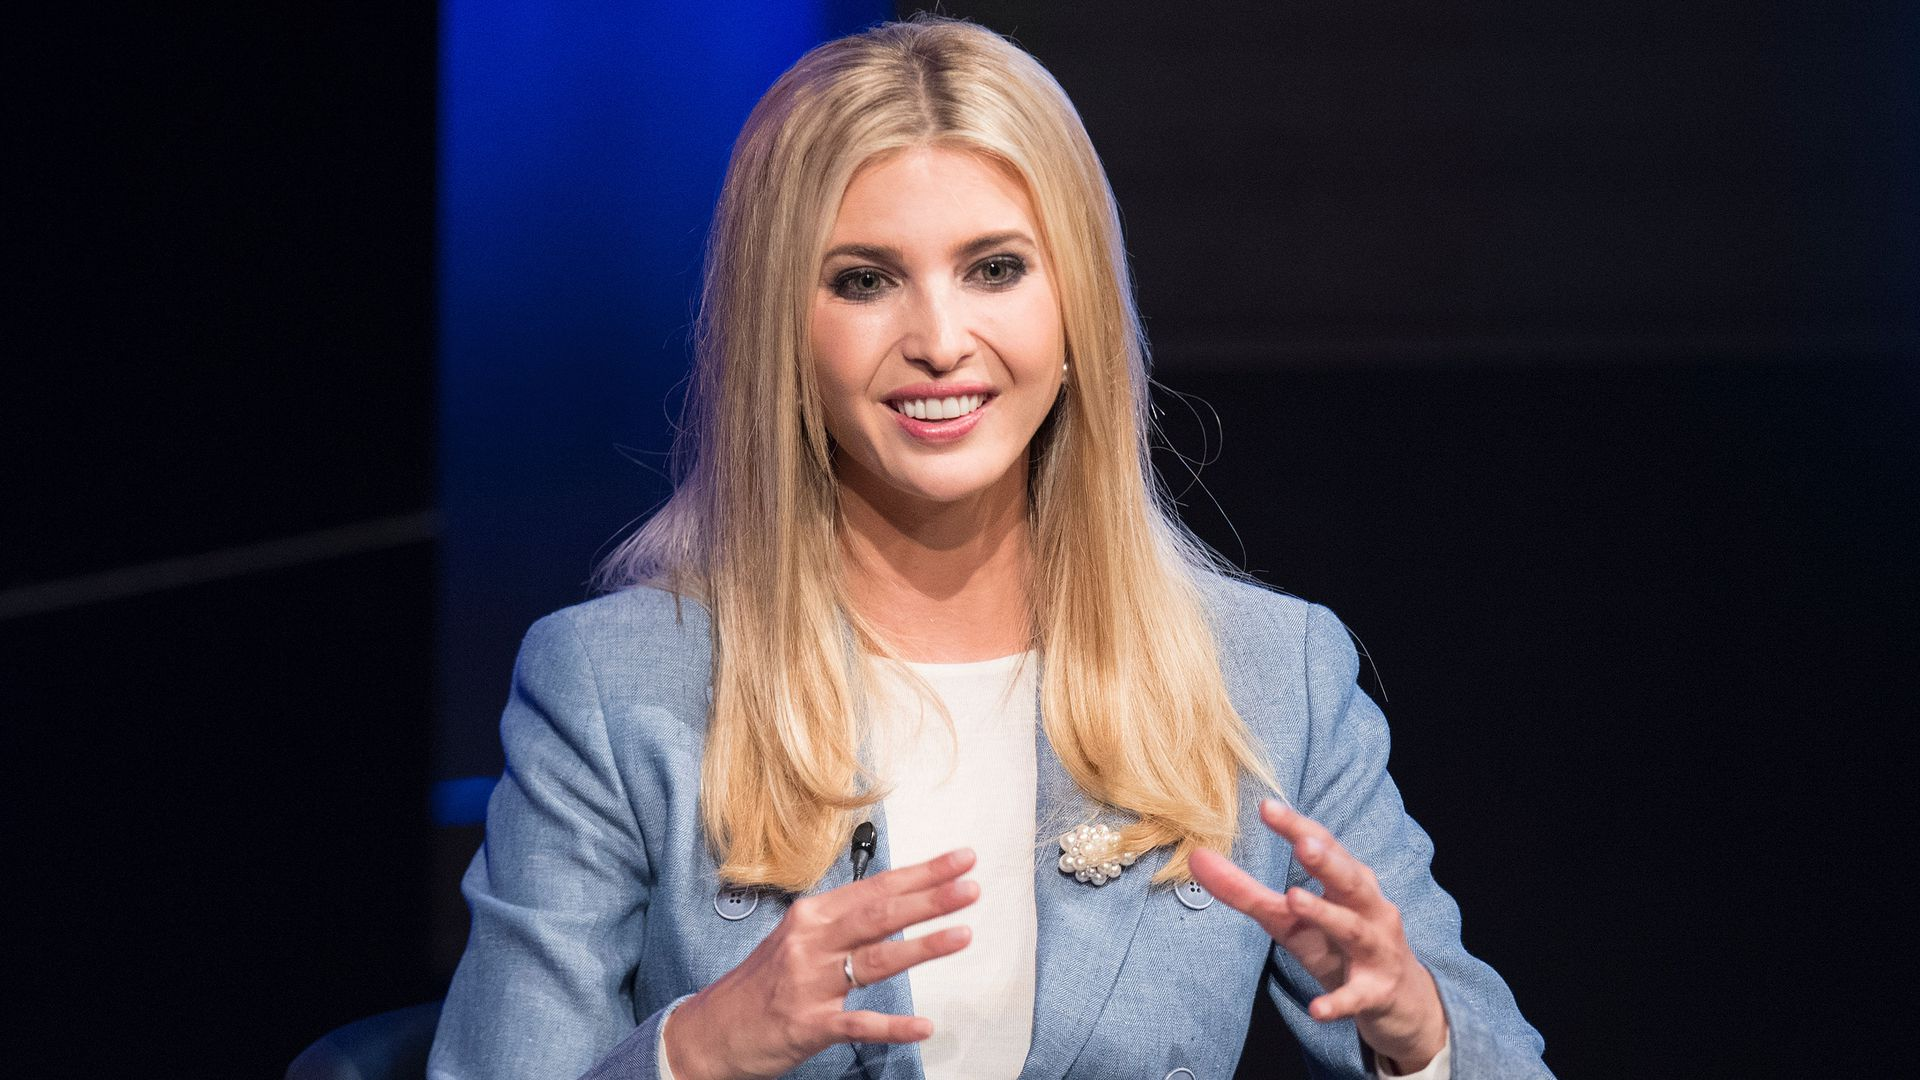 Ivanka Trump speaks enthusiastically with her hands on stage at an Axios event